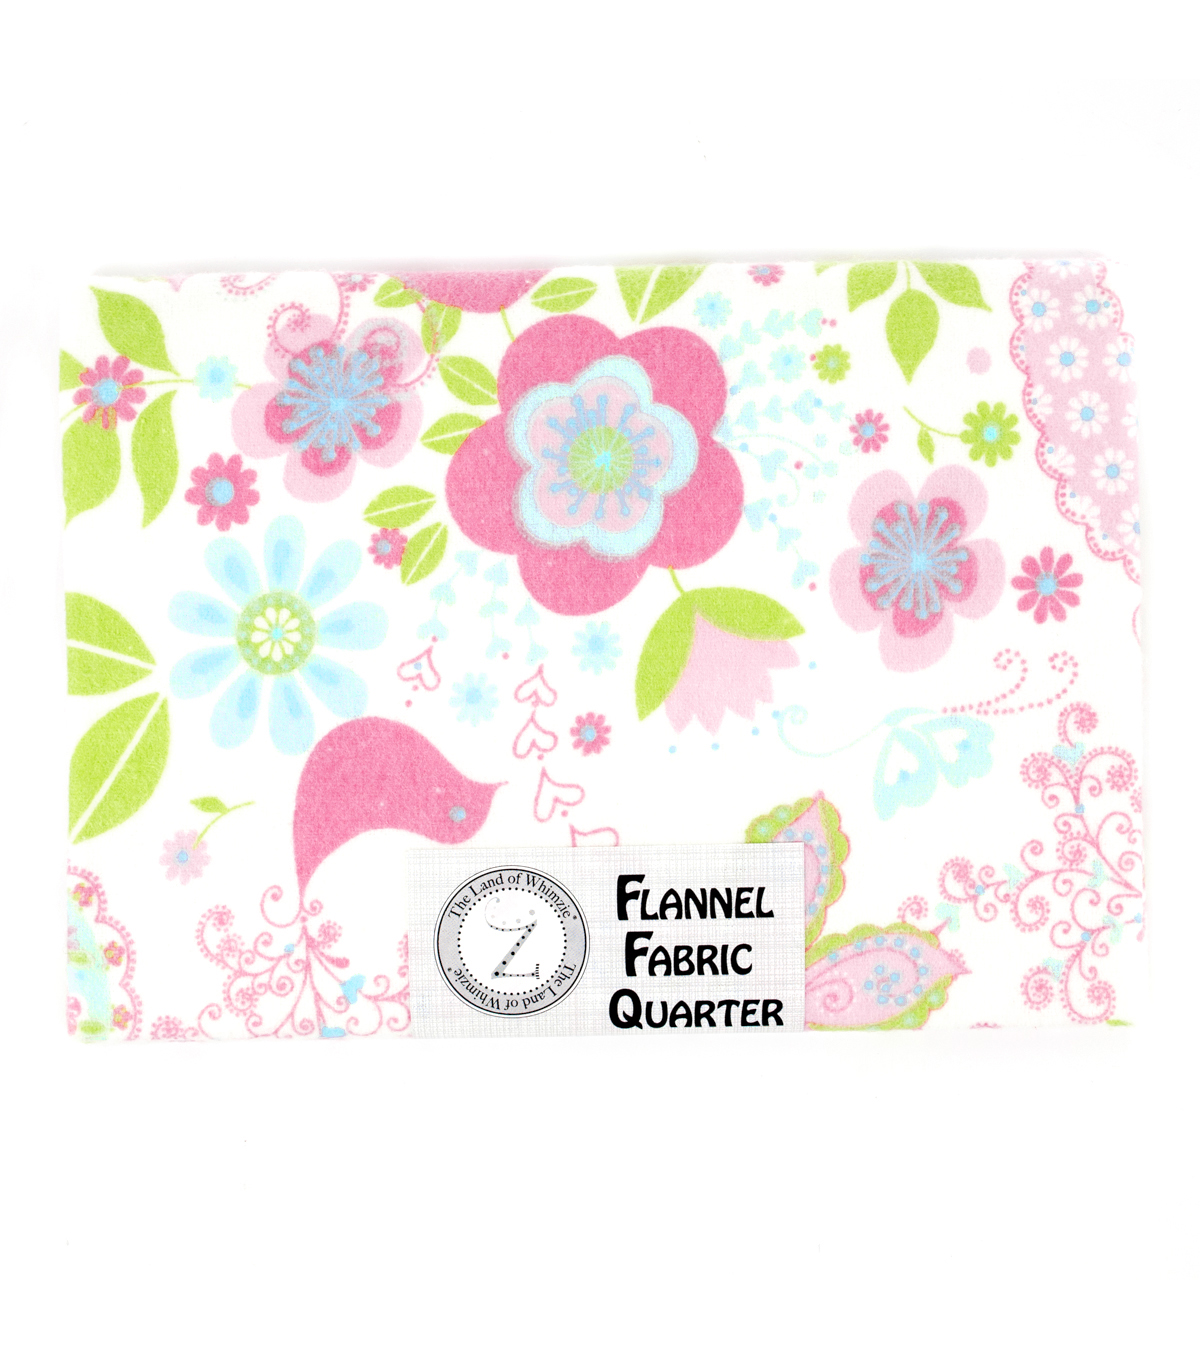 Land of Whimzie Sophie Flannel Fabric Quarter 2 - 1 piece 18\u0022 x 21\u0022